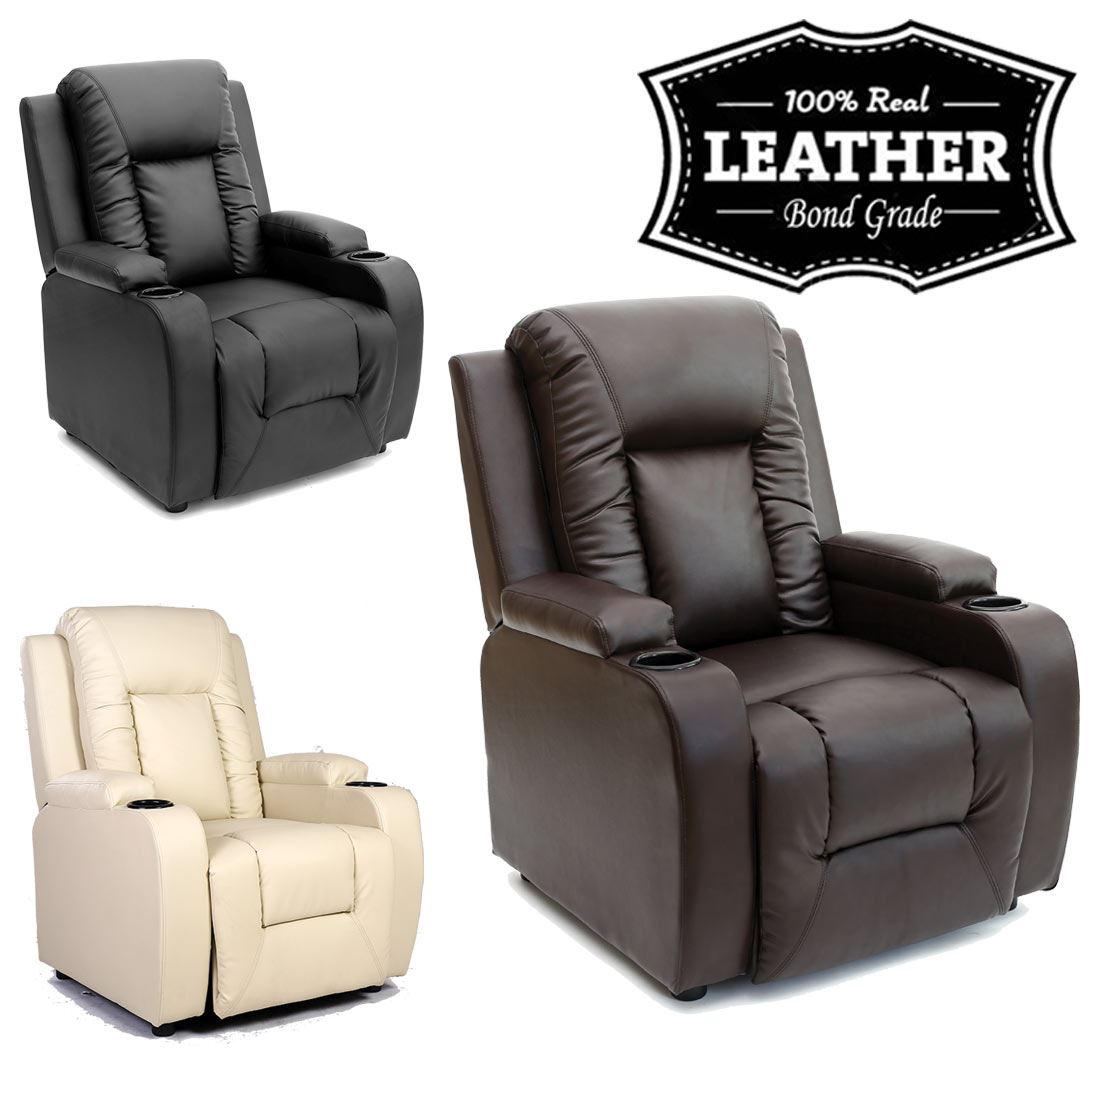 furniture recliners allen ca recliner en room ethan images living np f null dean shop leather